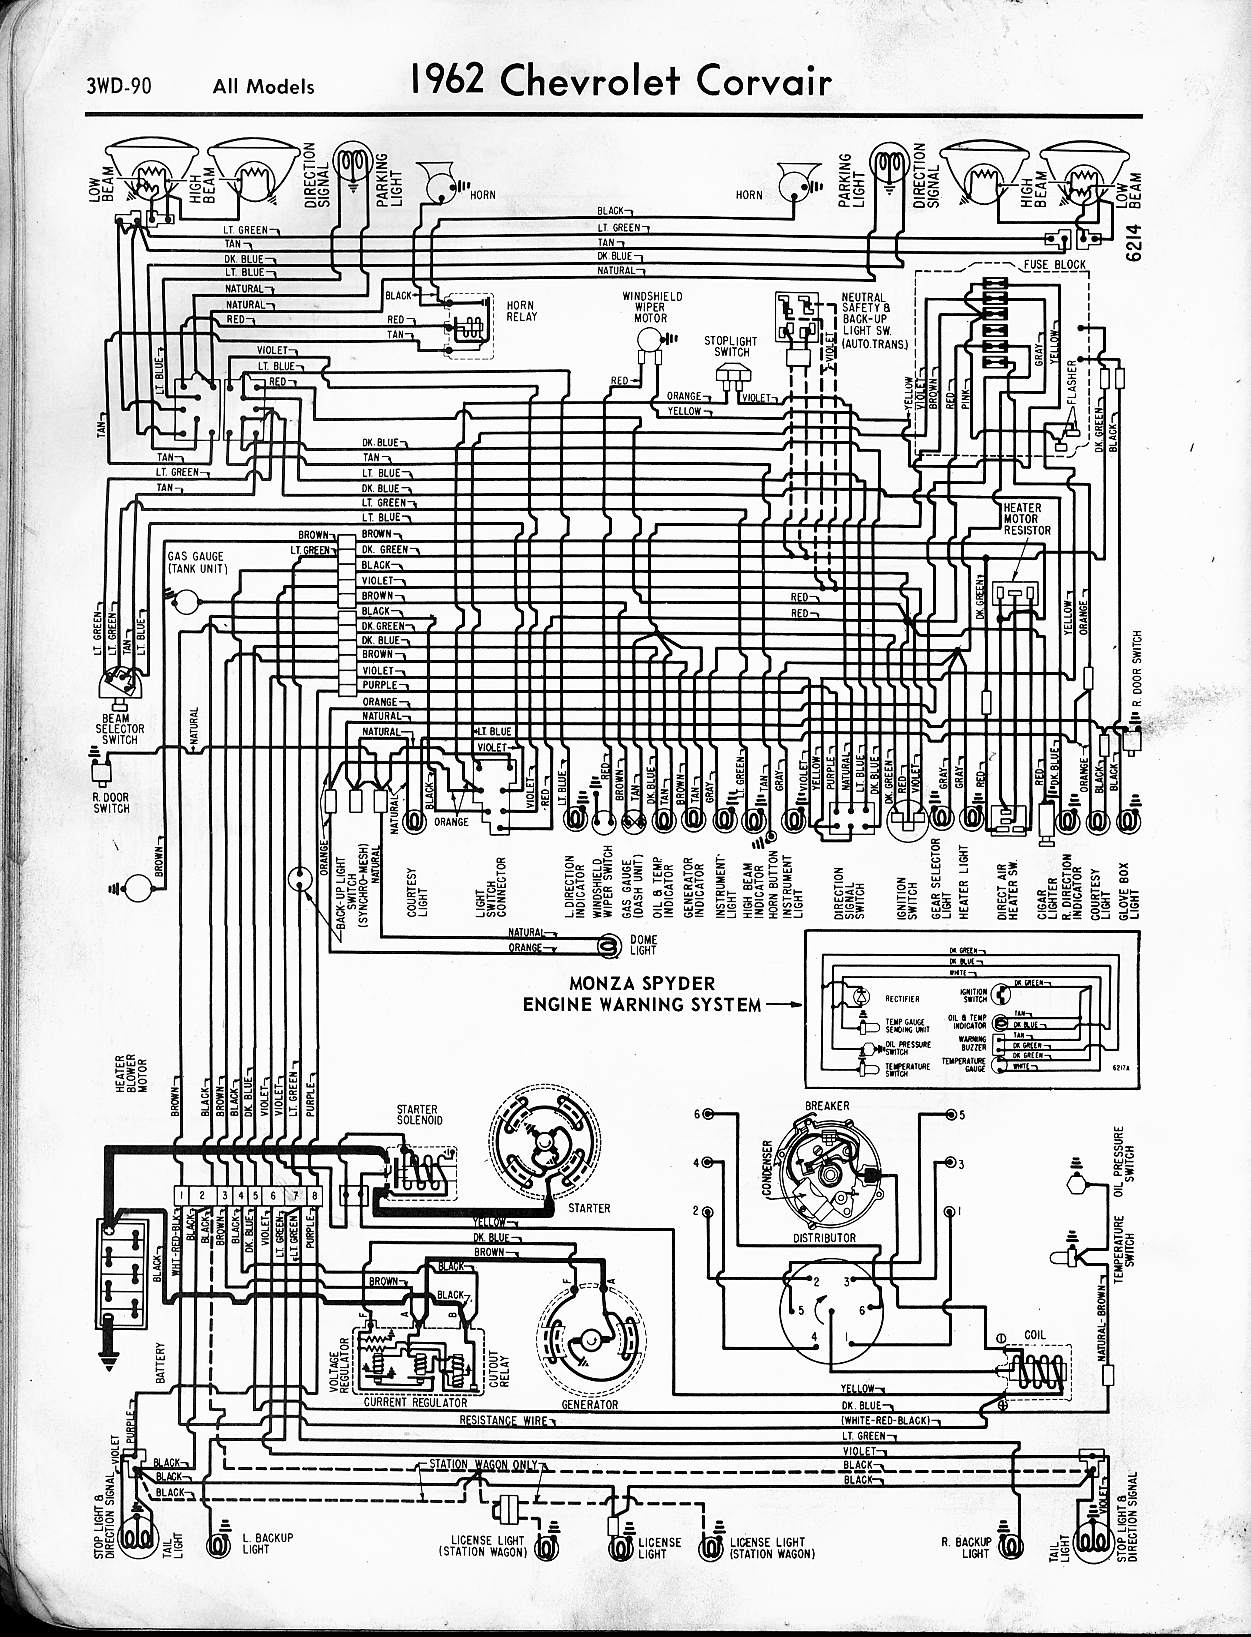 1964 corvette wiring diagram schematics wiring diagrams \u2022 1963 chevy c10 wiring-diagram 1954 corvette starter wiring diagram detailed schematics diagram rh keyplusrubber com 1964 corvette stingray wiring diagram 1964 corvette dash wiring